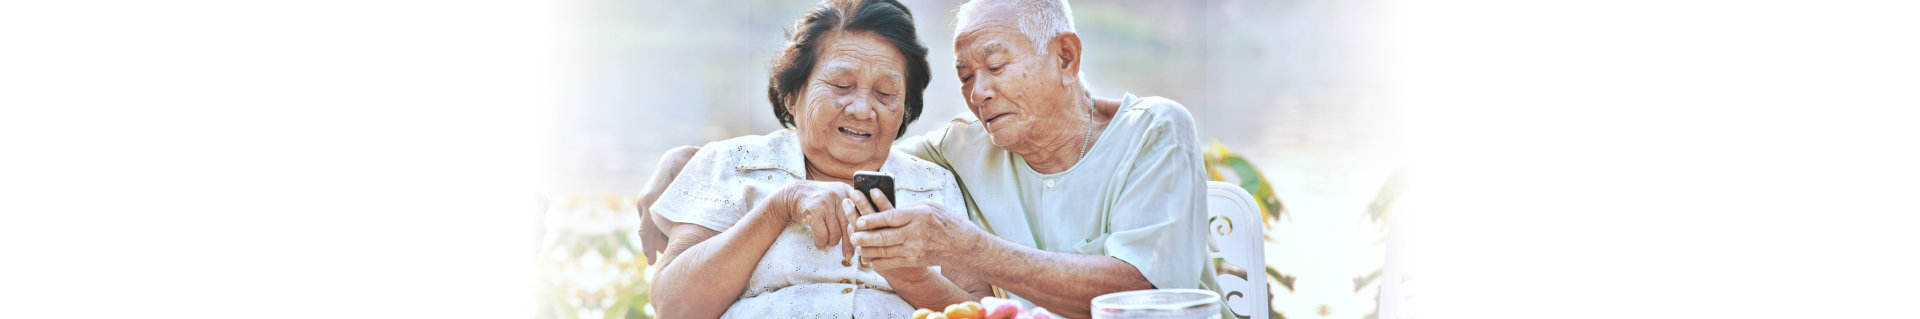 senior couple looking at a phone